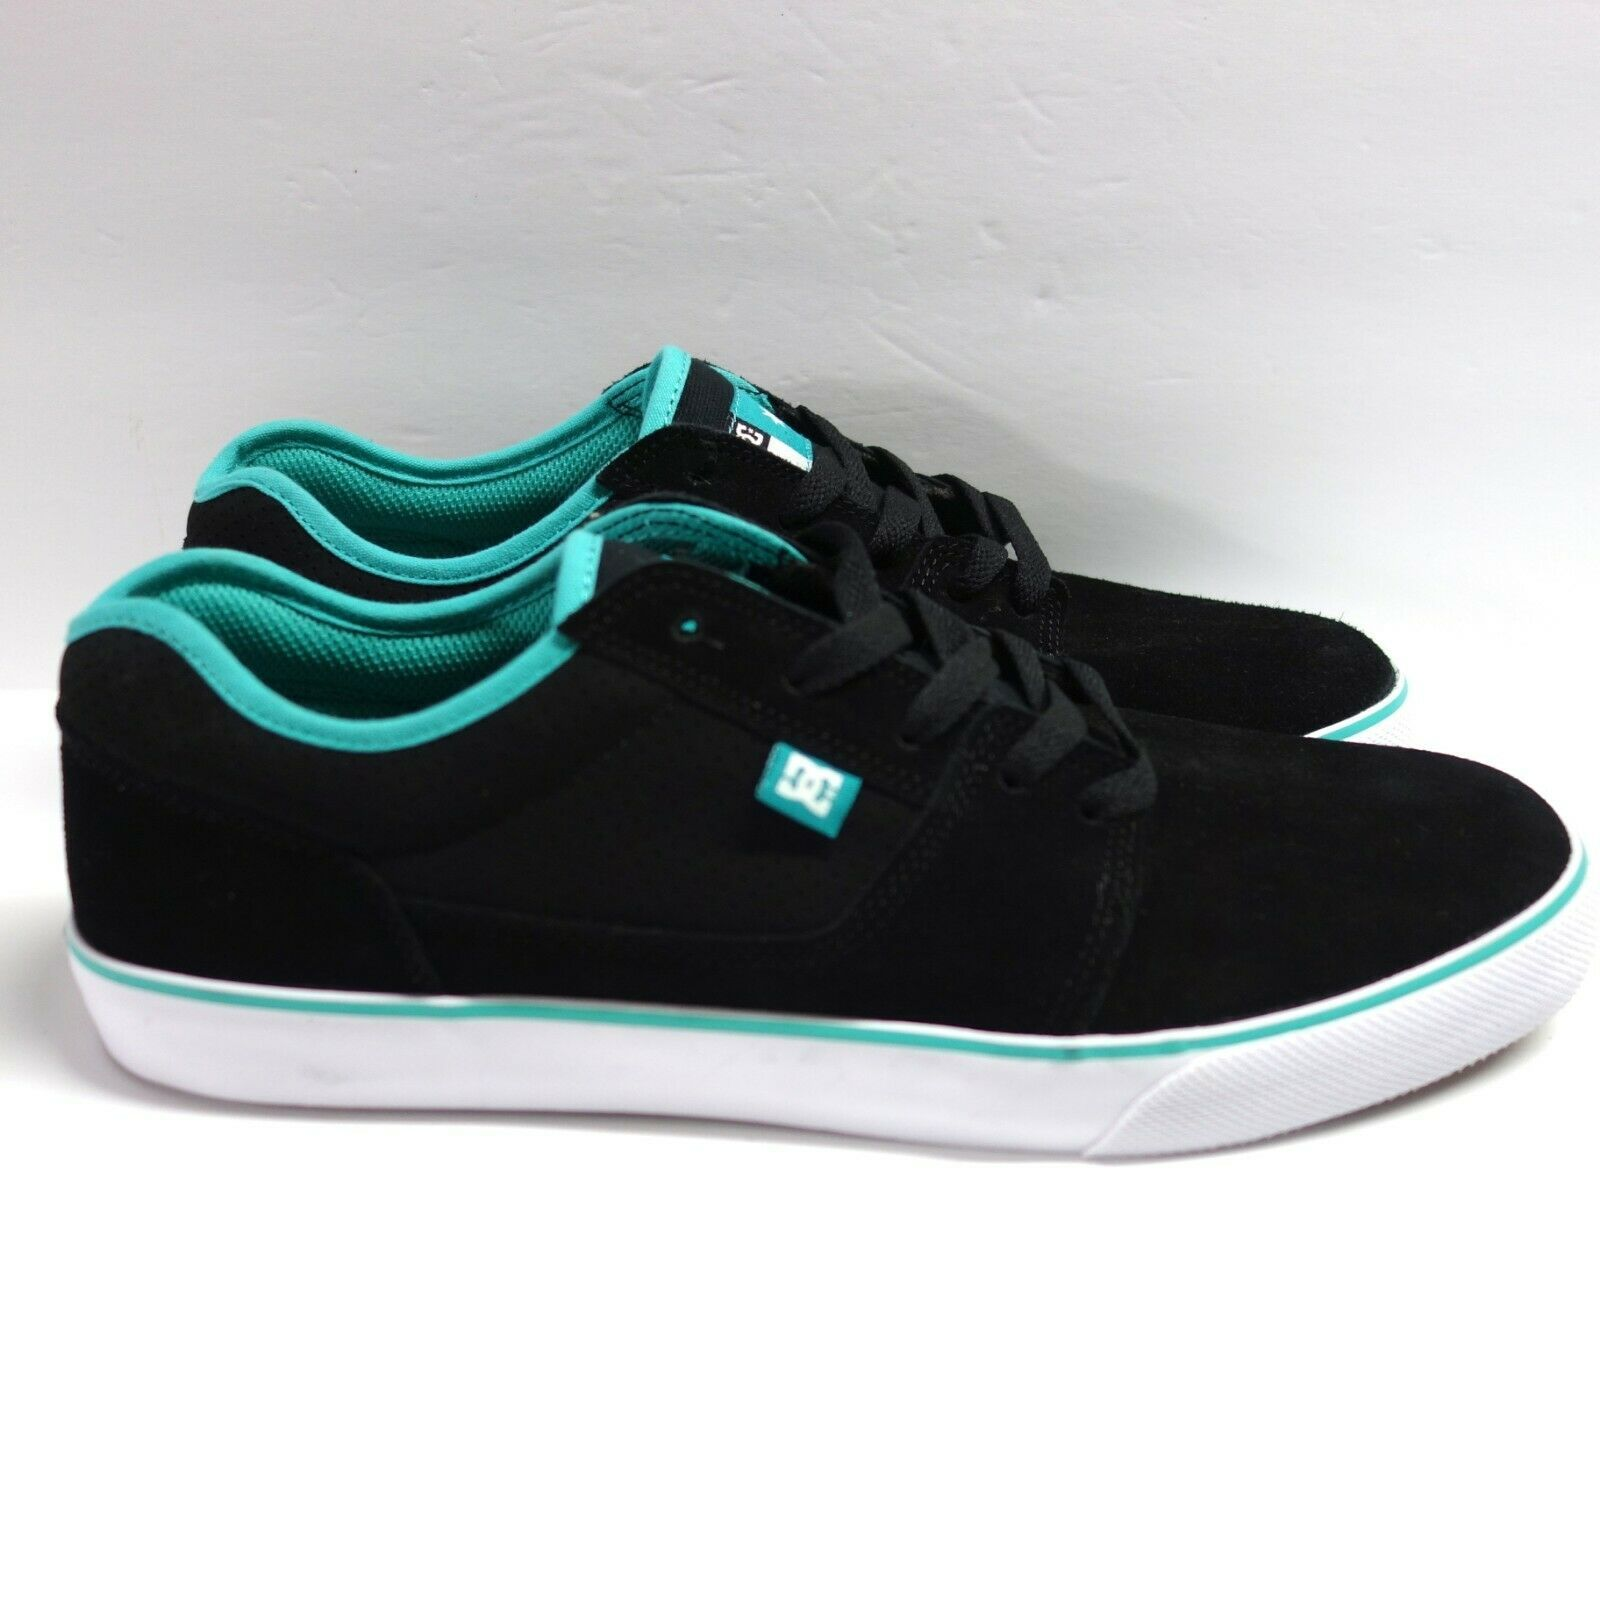 DC Tonik S Super Suede Skateboard Shoes Men's 11 Black Turquoise New w/o Box